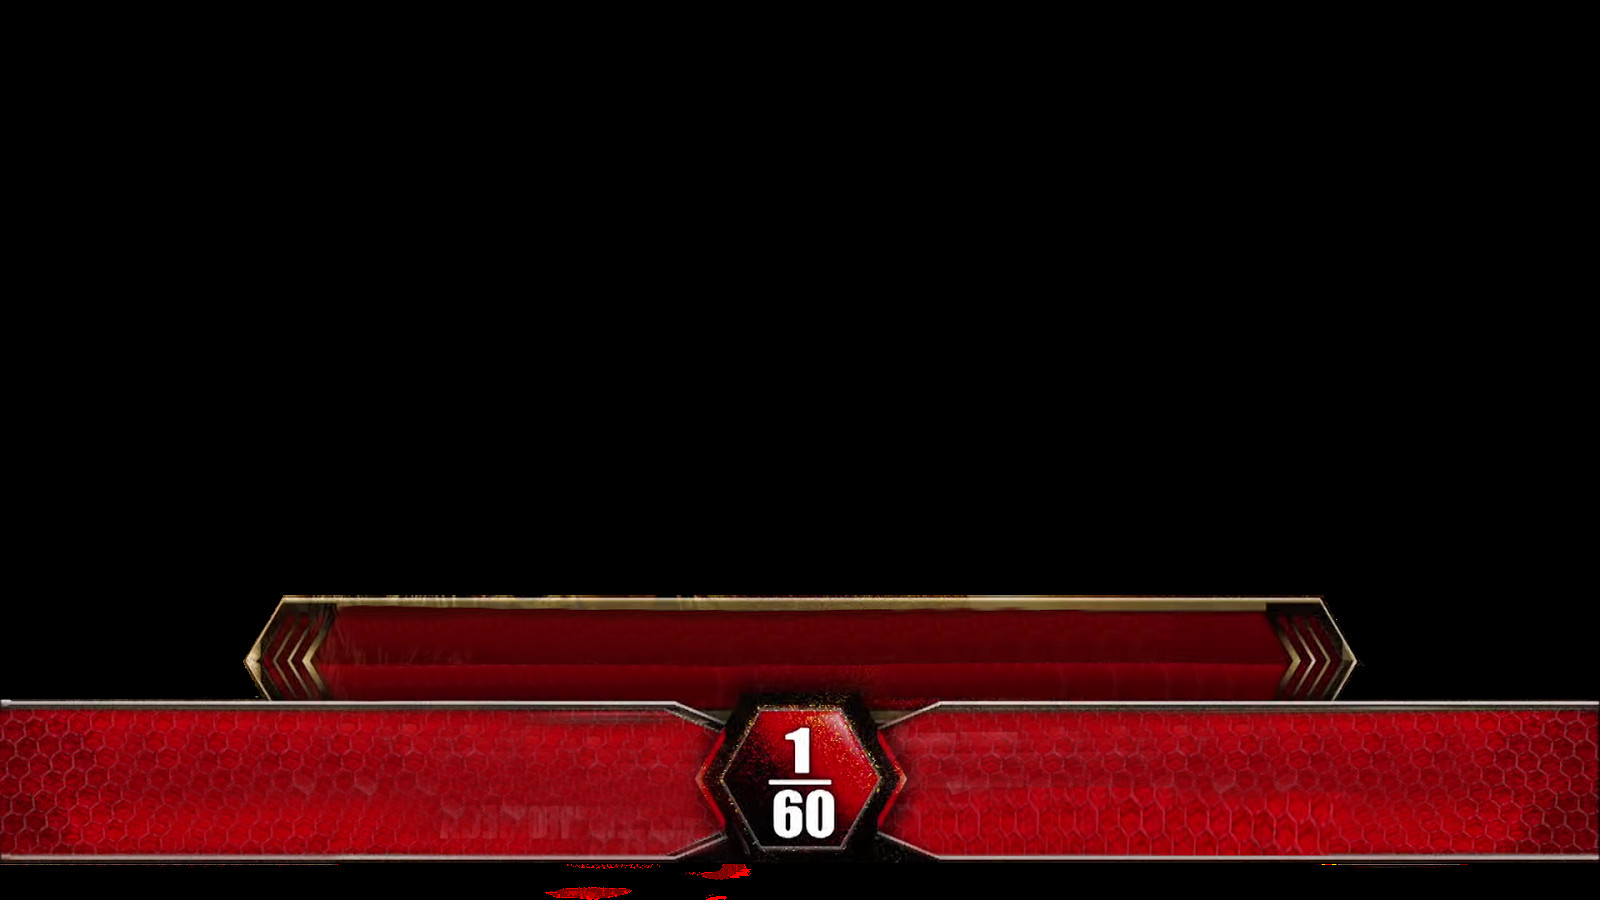 Raw Match Card Template Renders Backgrounds Logos Njpw Wrestle Kingdom 11 Match Card